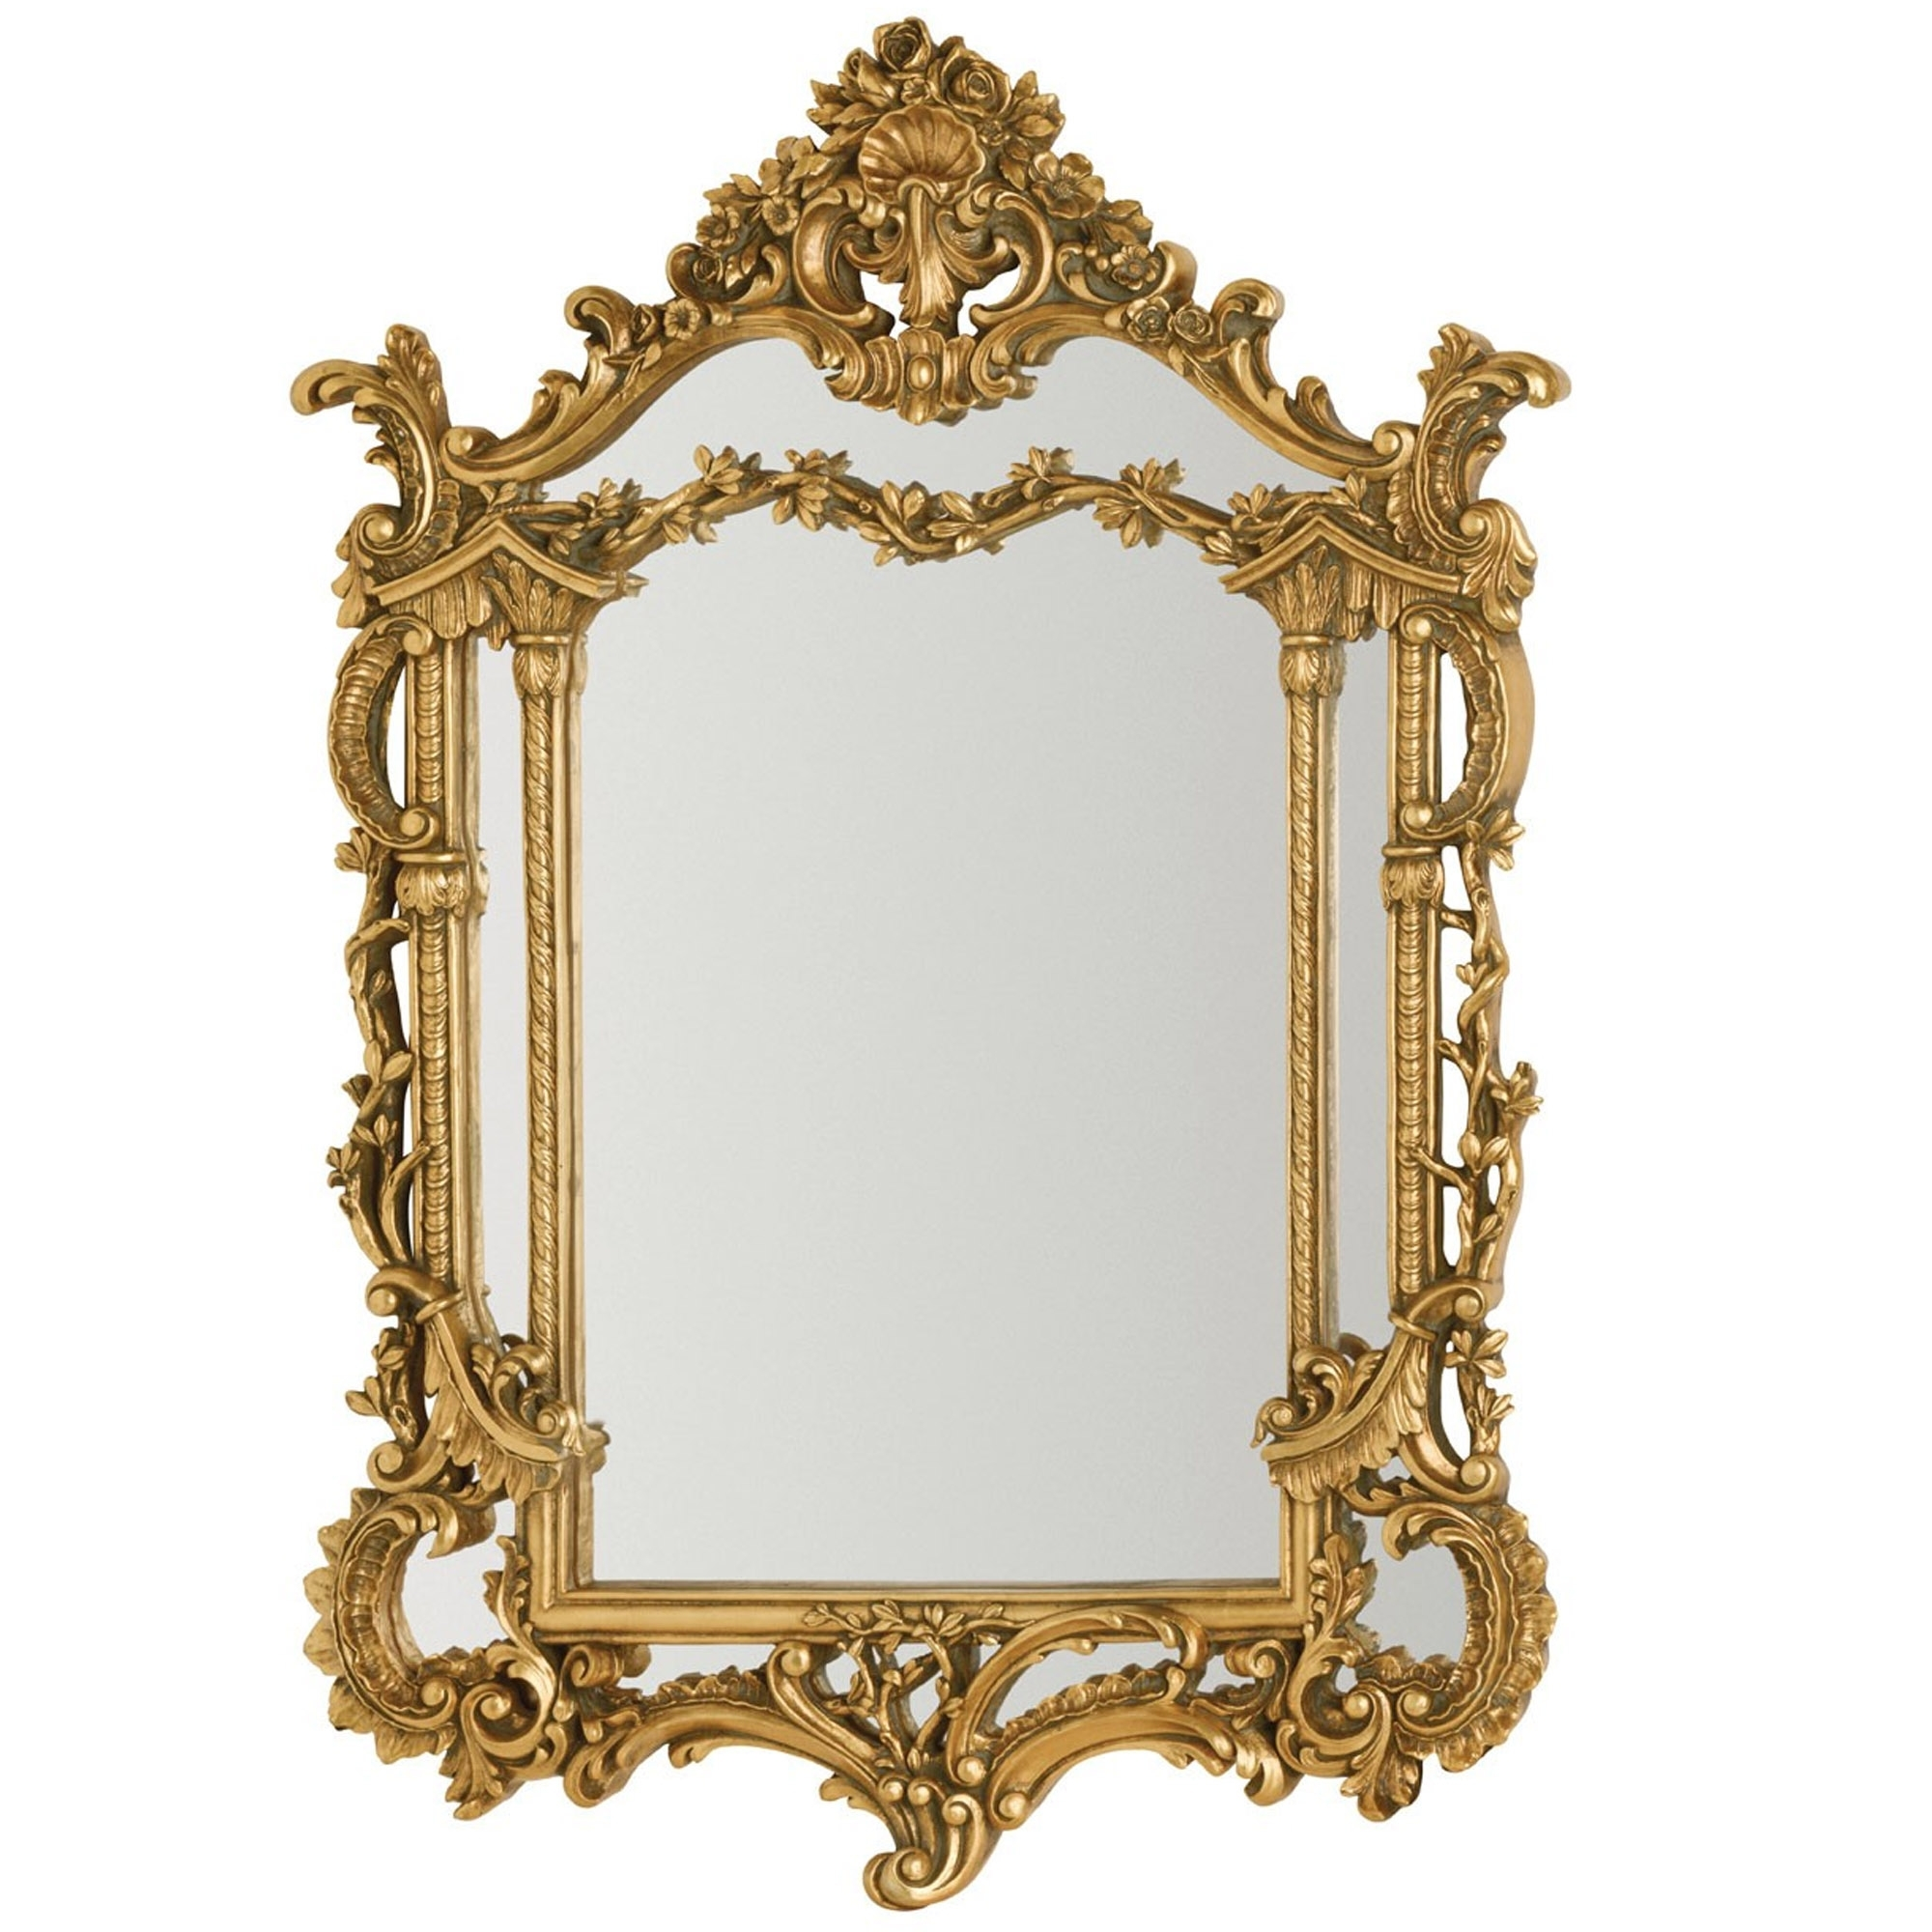 Antique French Style Gold Scarlatti Wall Mirror Wall